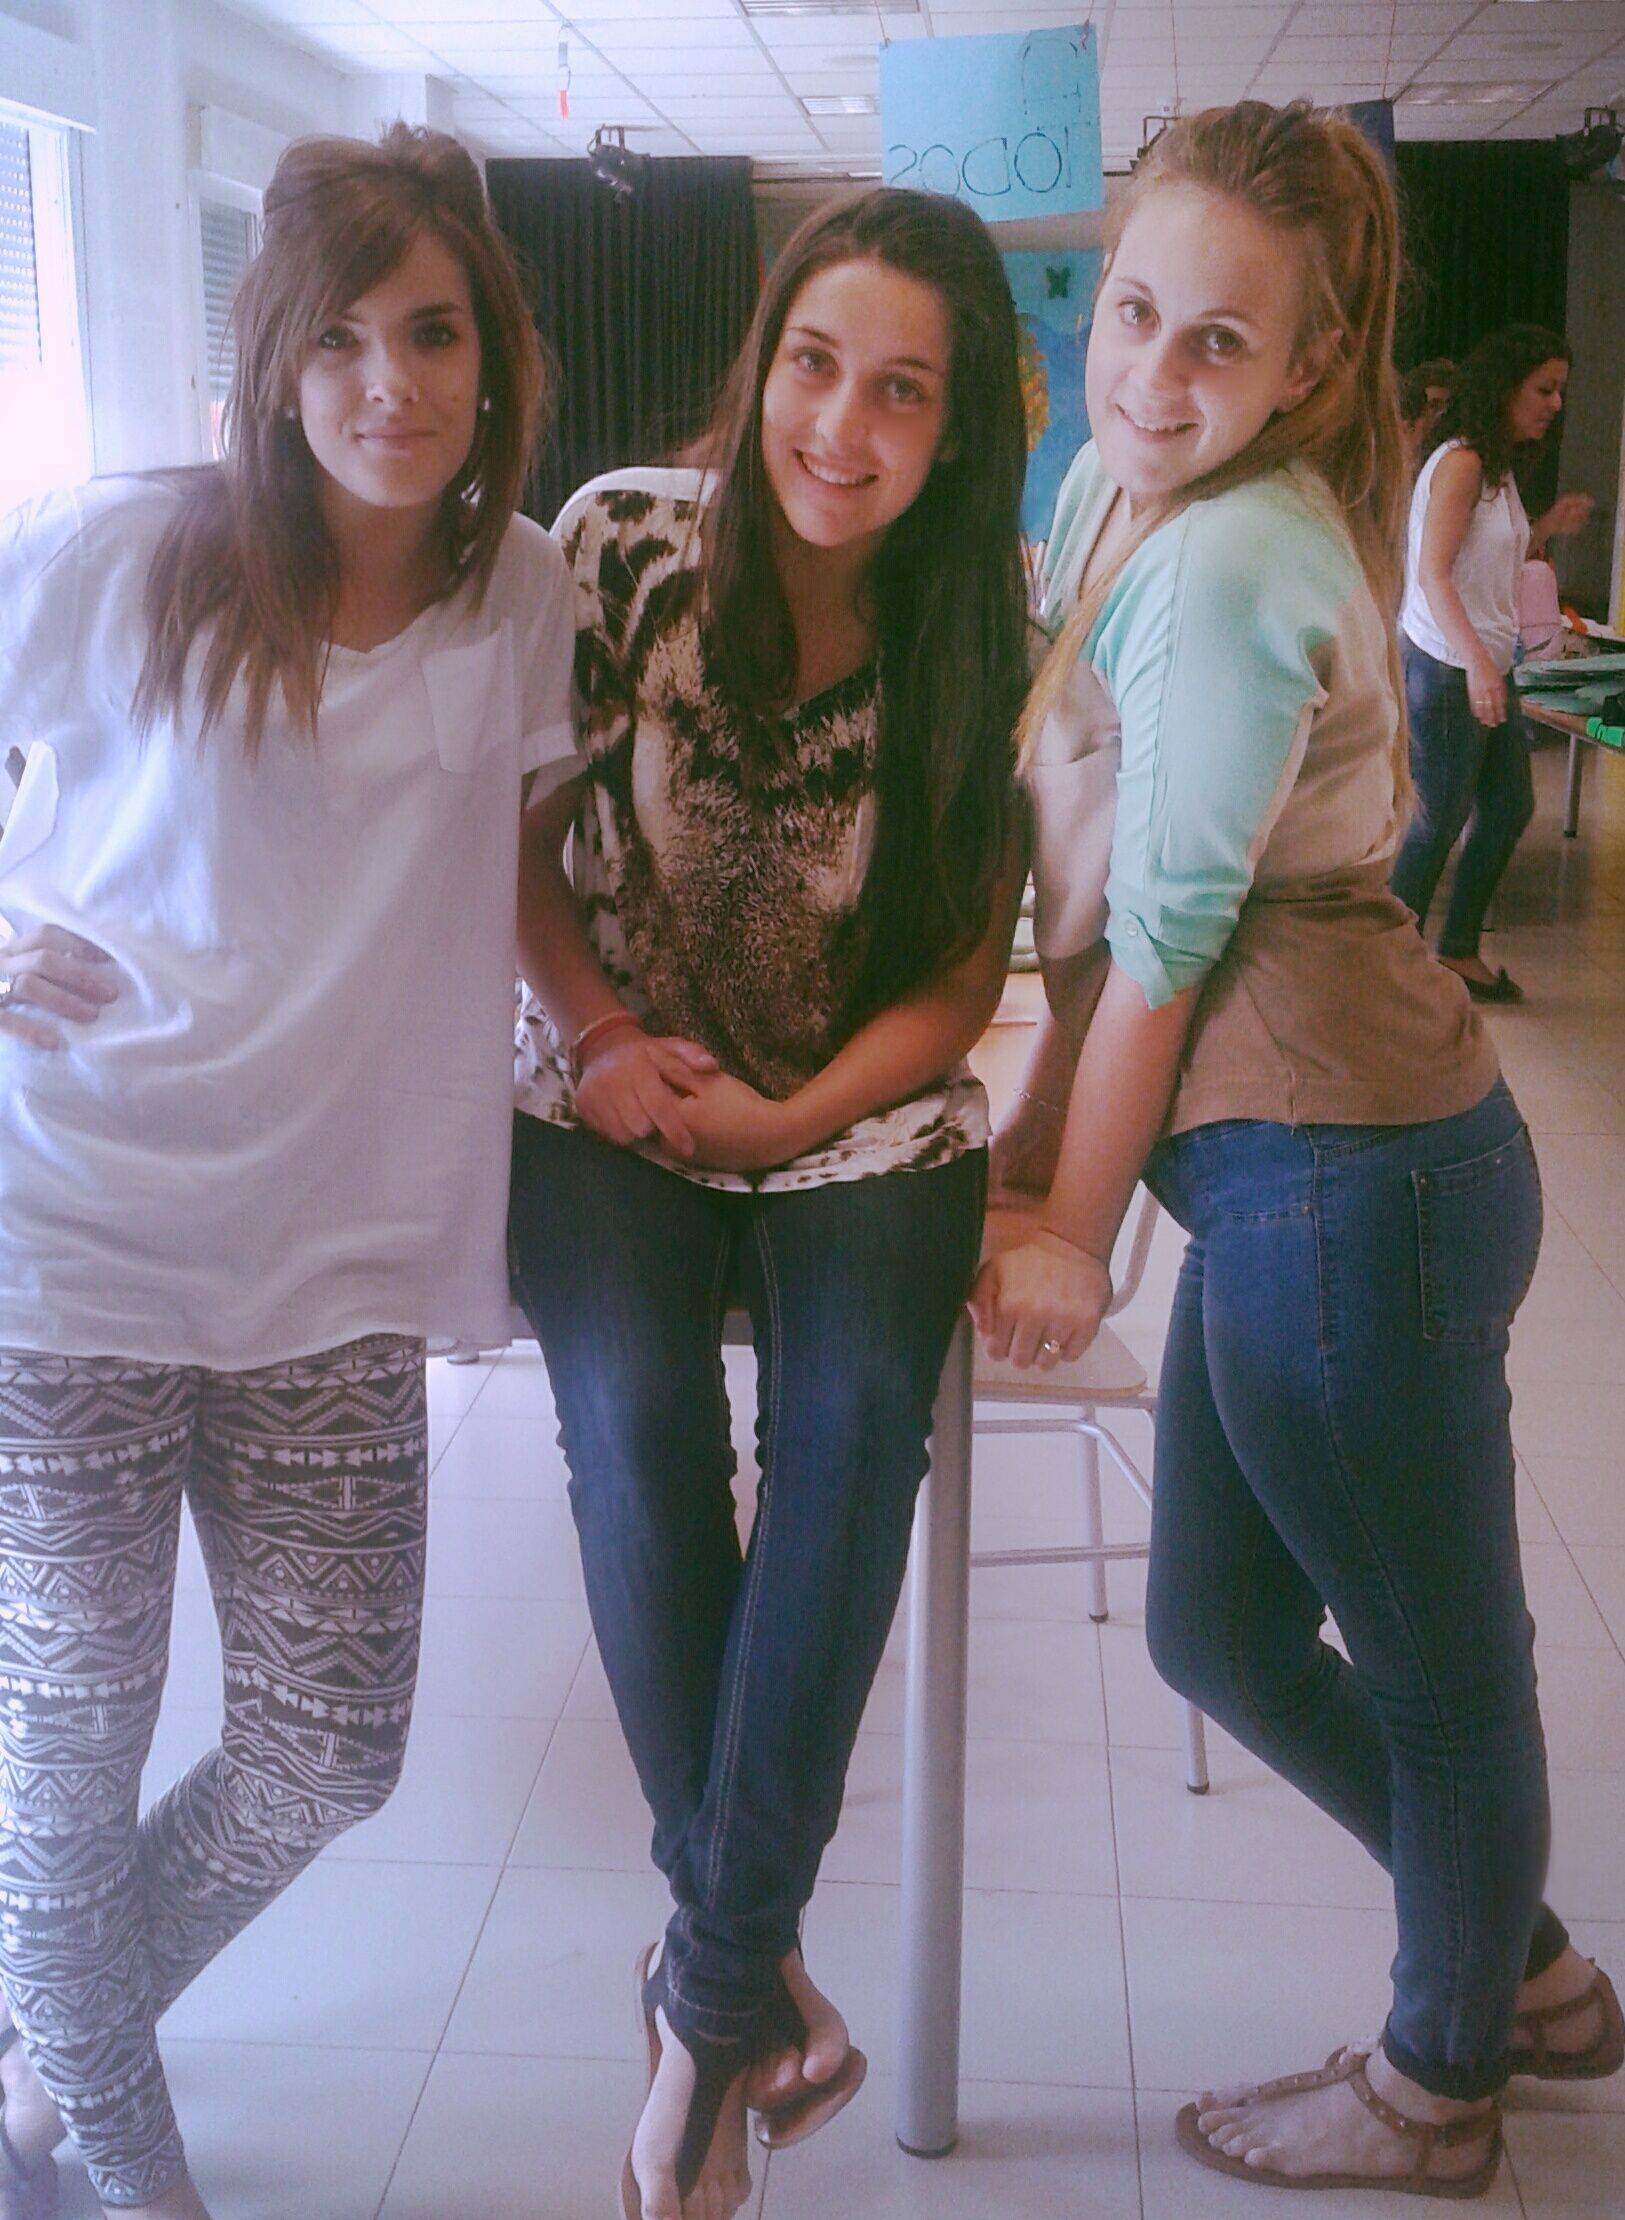 My friends Maria, Leire and Me in class